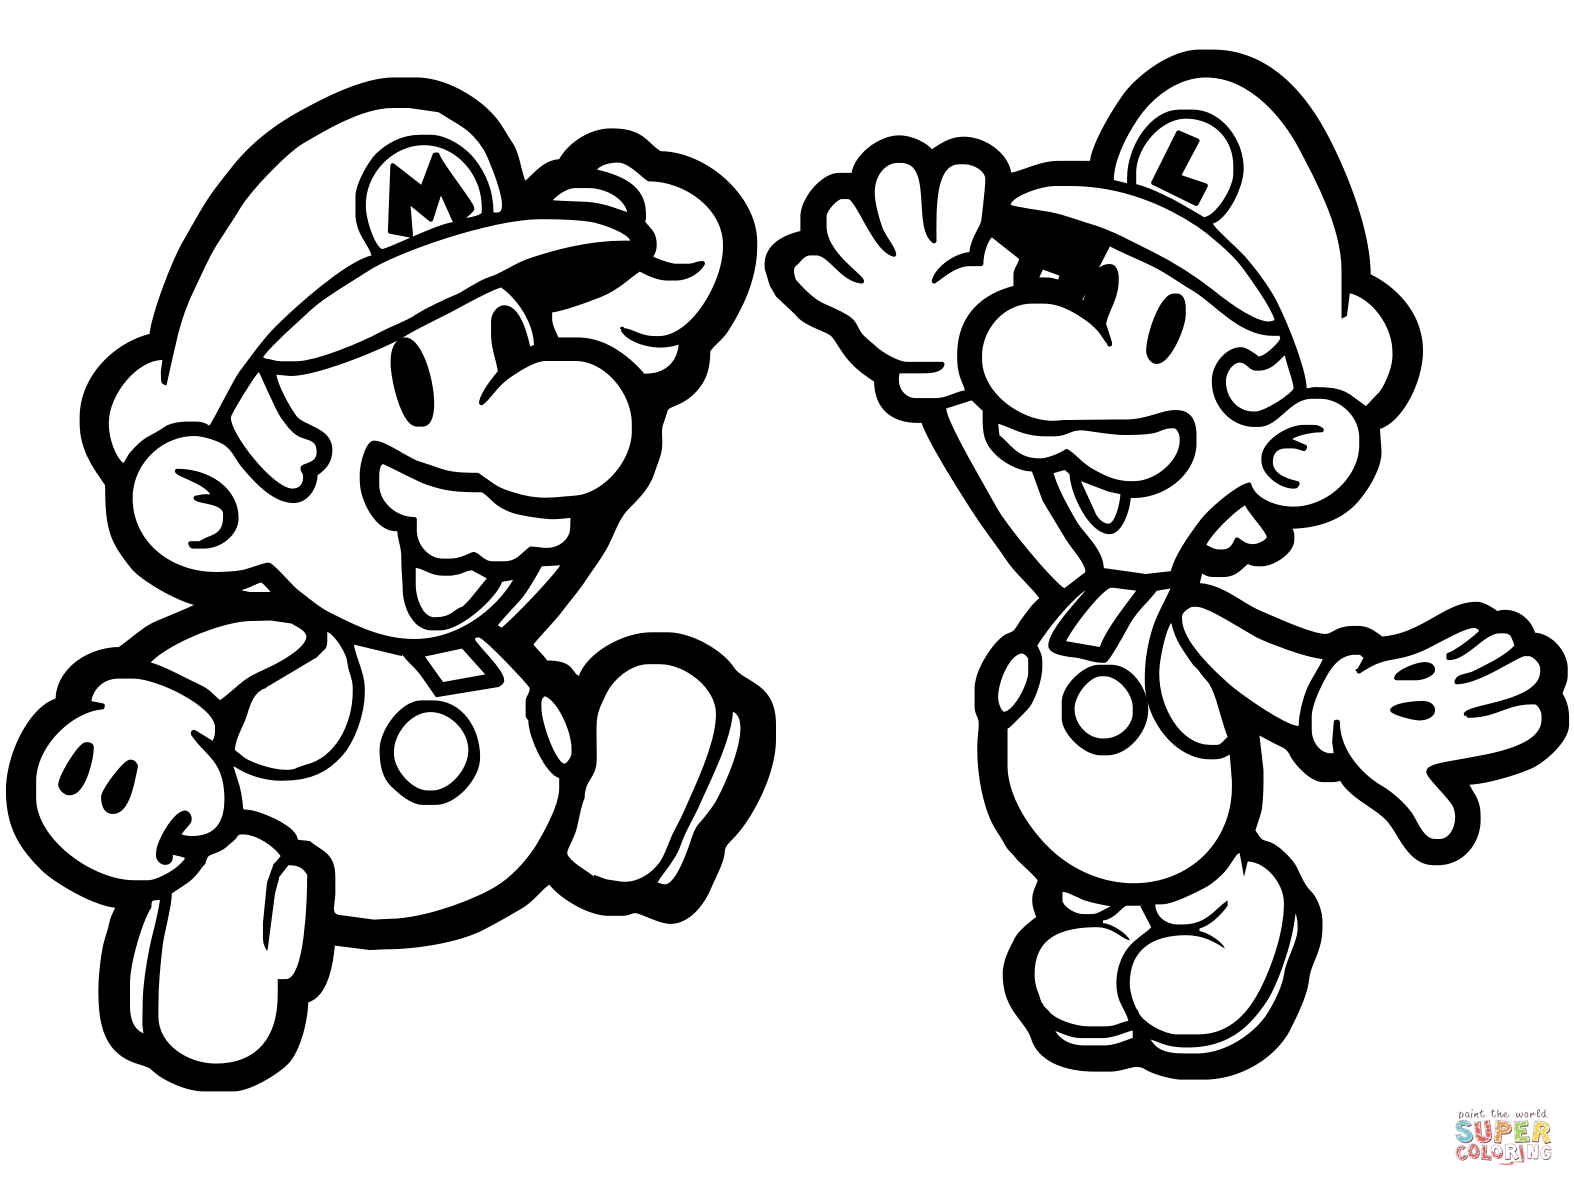 super mario 64 coloring pages free super mario odyssey coloring pages line drawing 64 mario coloring super pages